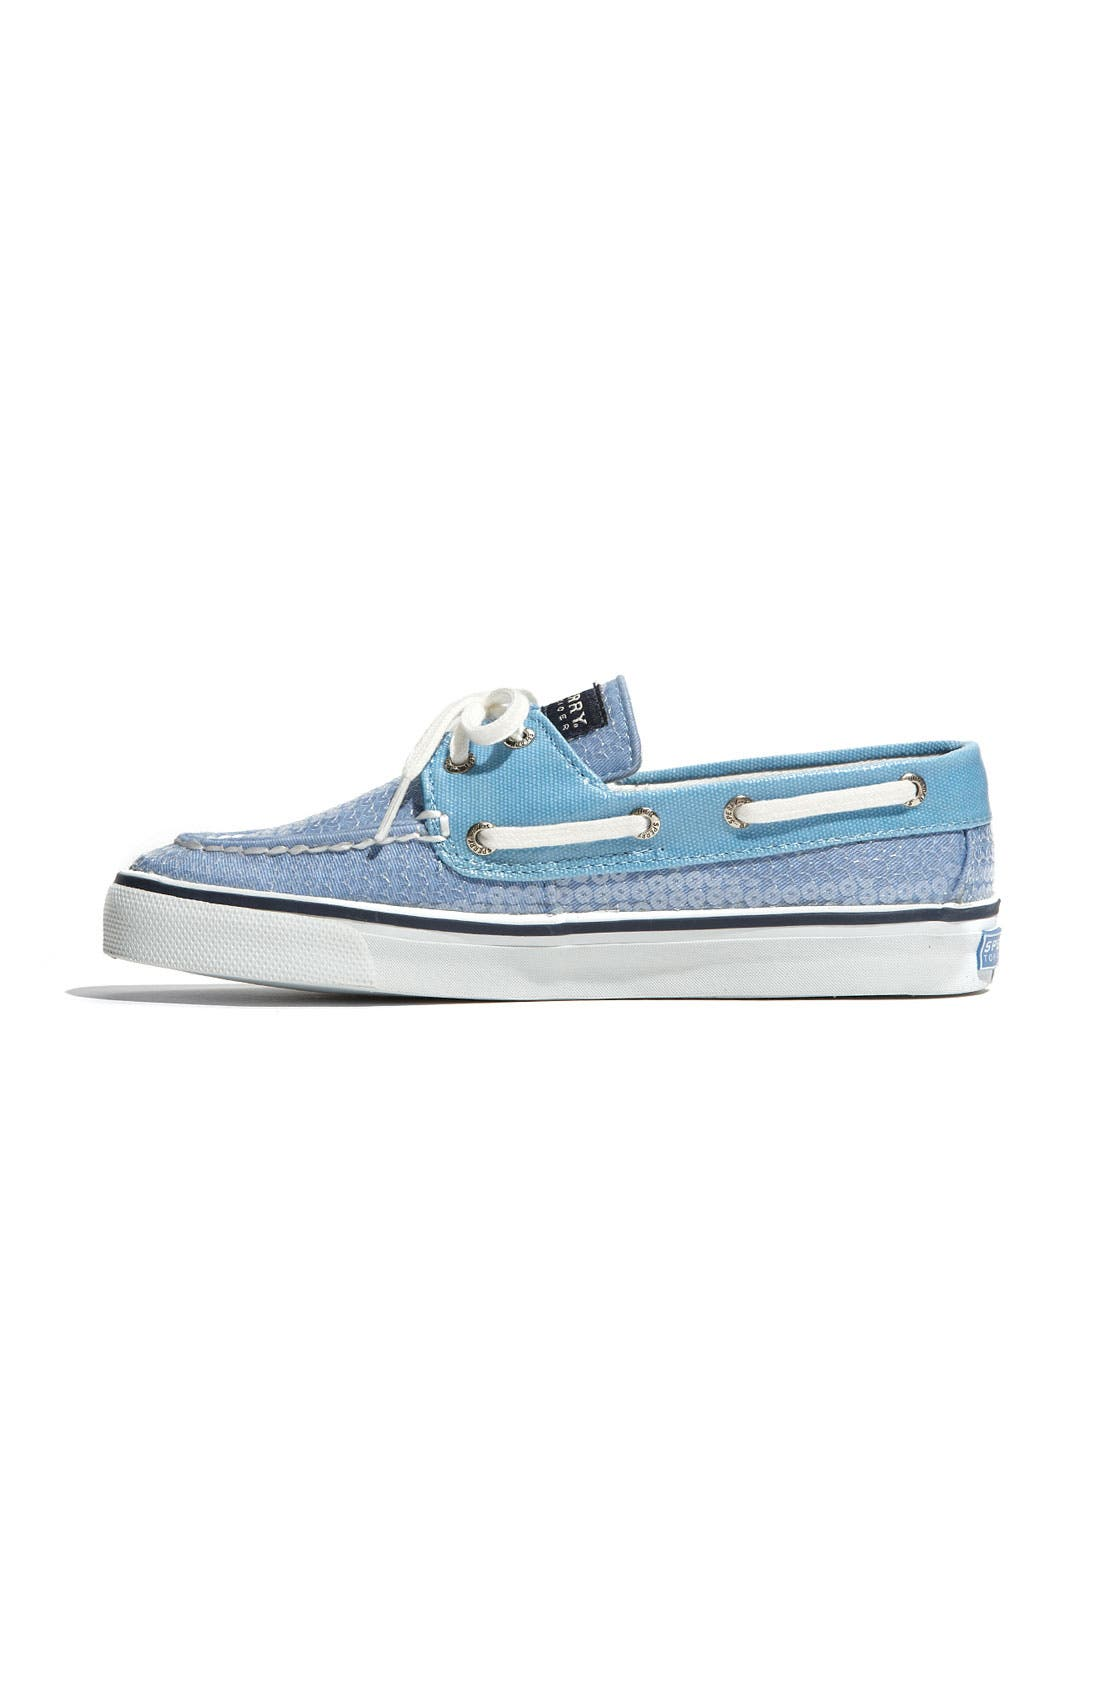 Top-Sider<sup>®</sup> 'Bahama' Sequined Boat Shoe,                             Alternate thumbnail 64, color,